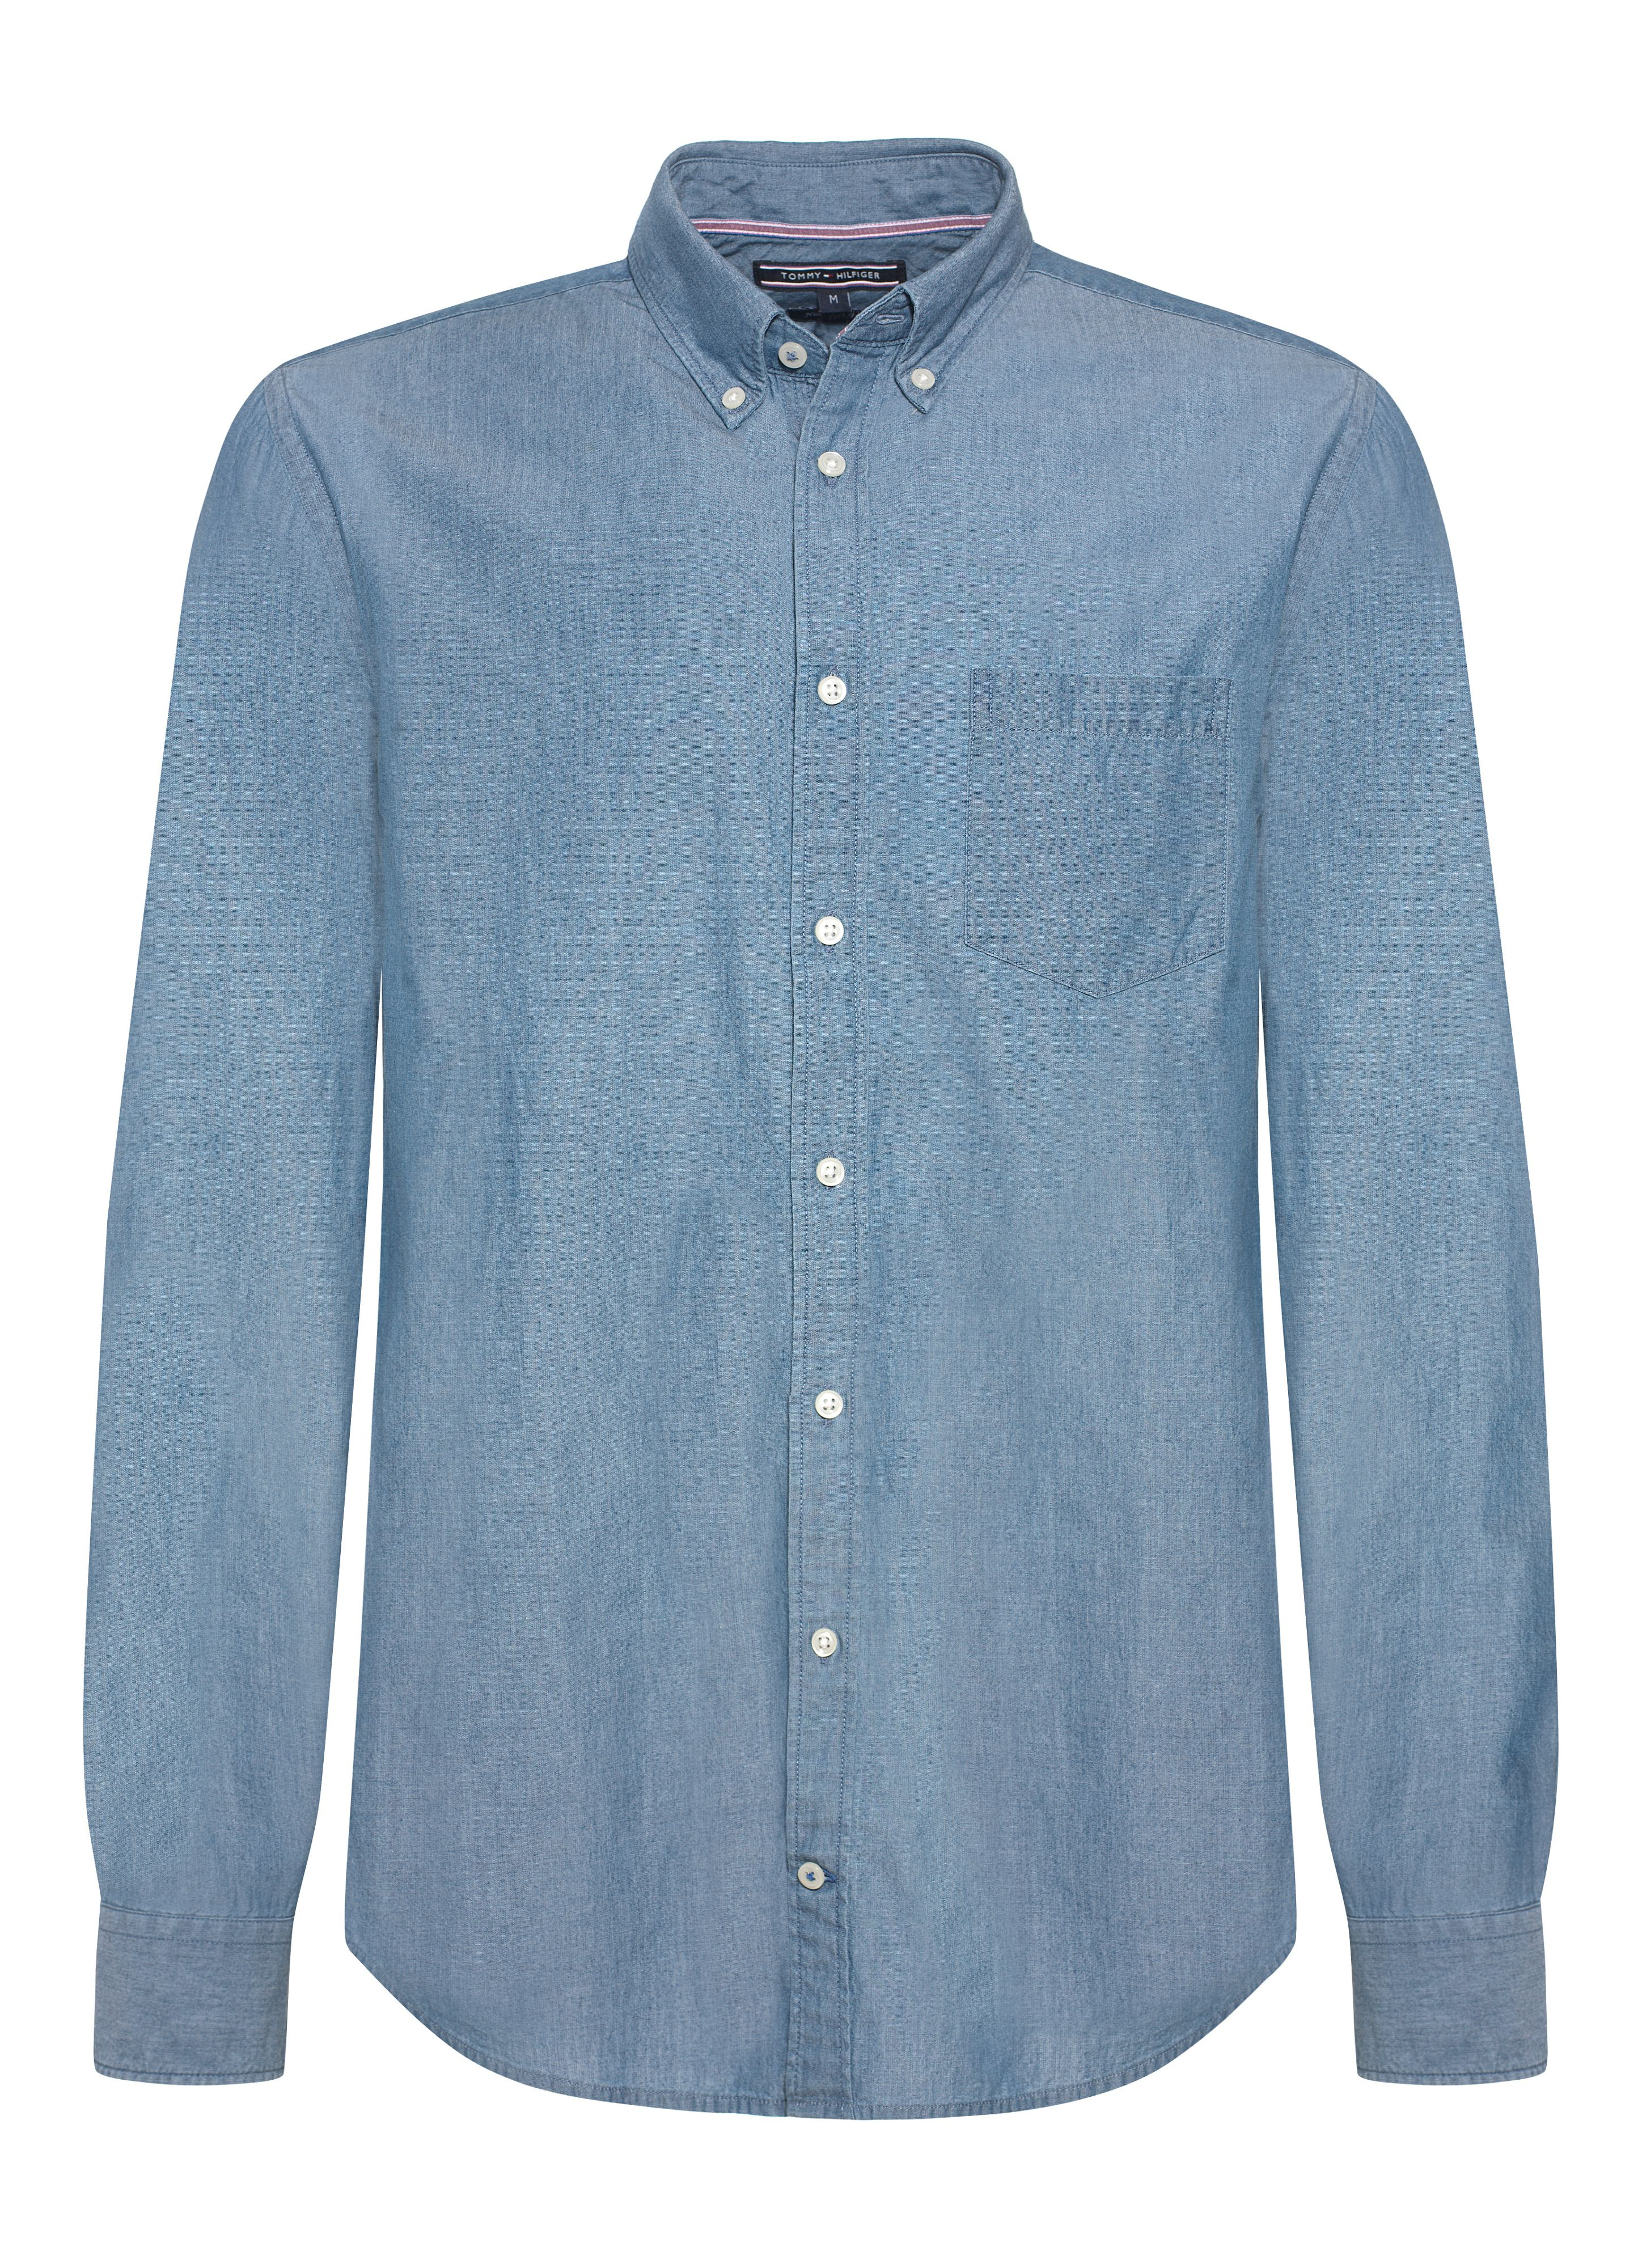 tommy hilfiger chambray plain classic fit button down